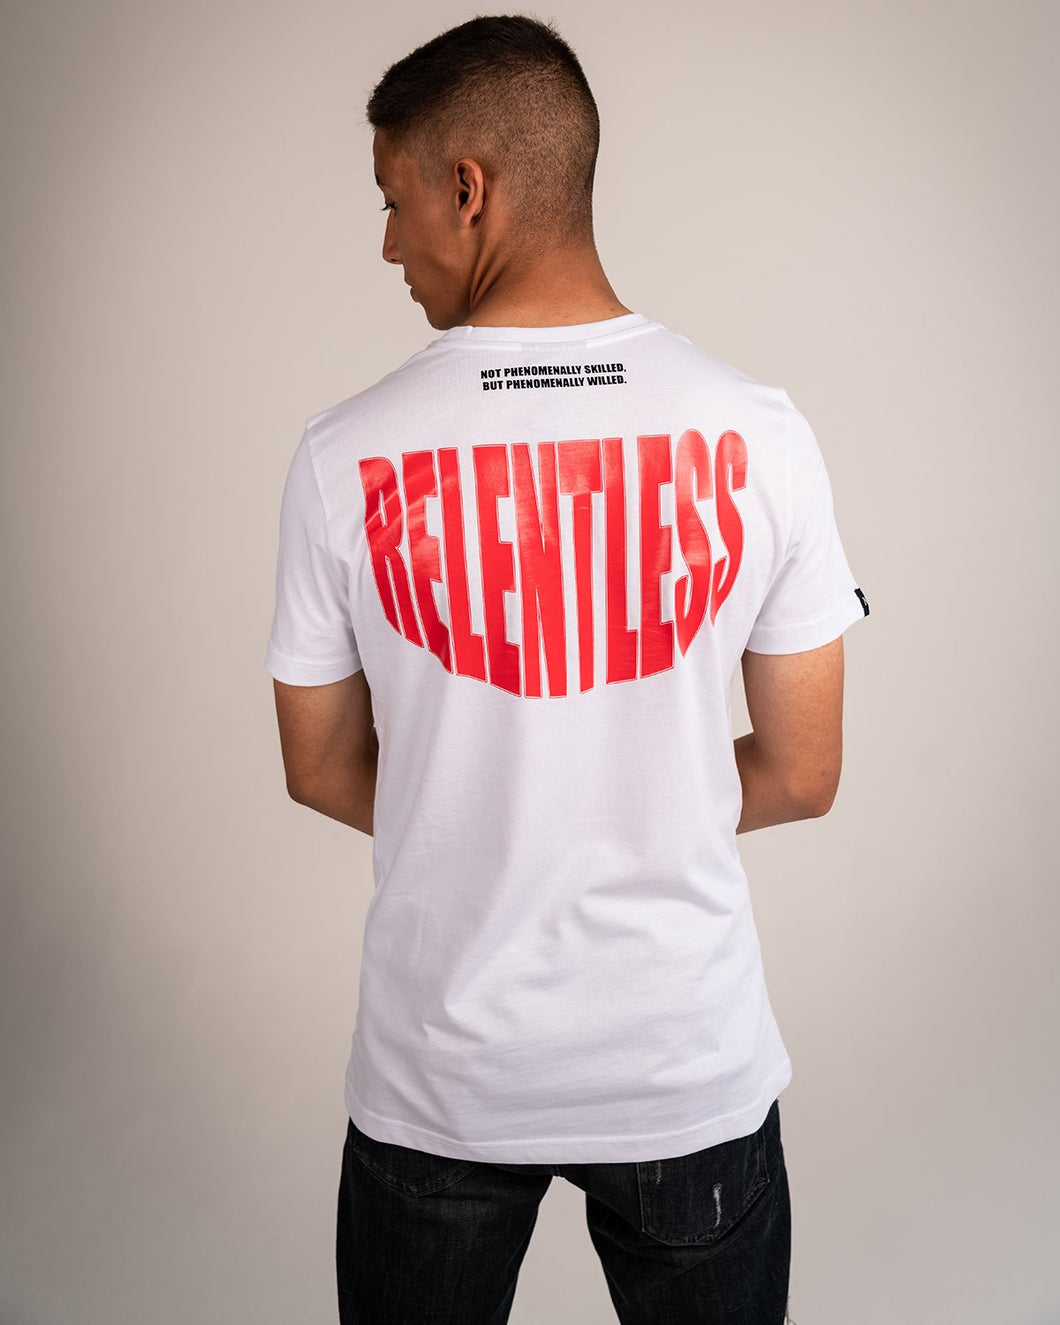 Pursuit Relentless T-Shirt